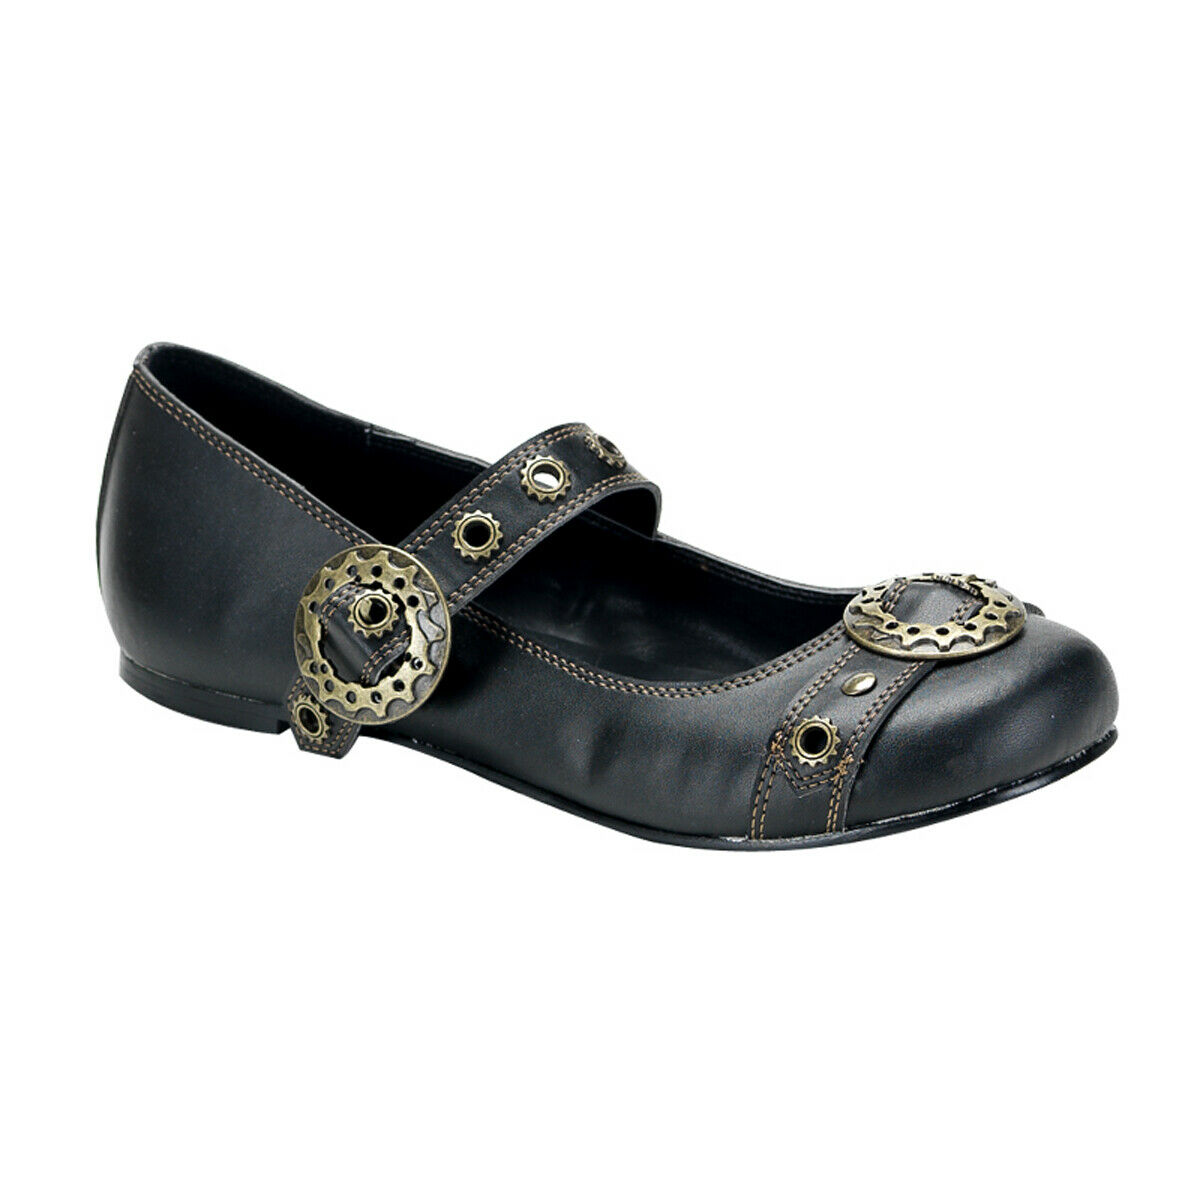 PLEASER Demonia Daisy-09 Steampunk Goth Punk Ballet Flat MJ W  Gear Buckle